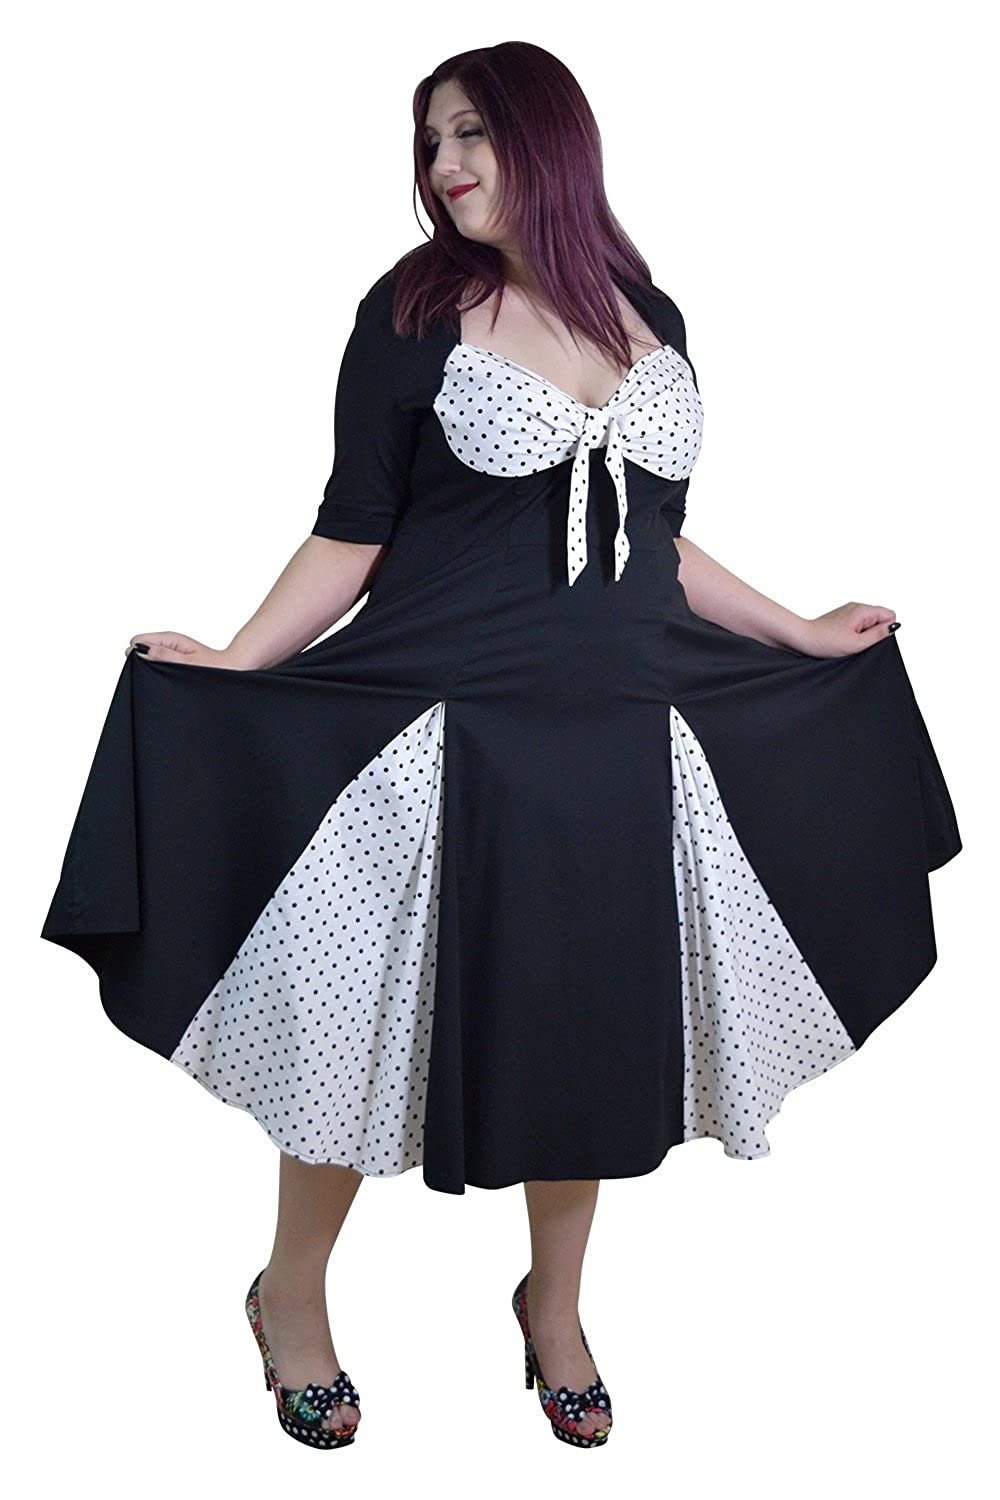 Skelapparel Plus 50's Rockabilly Black & White Polka-dot Dress with 3/4 Sleeves 39150